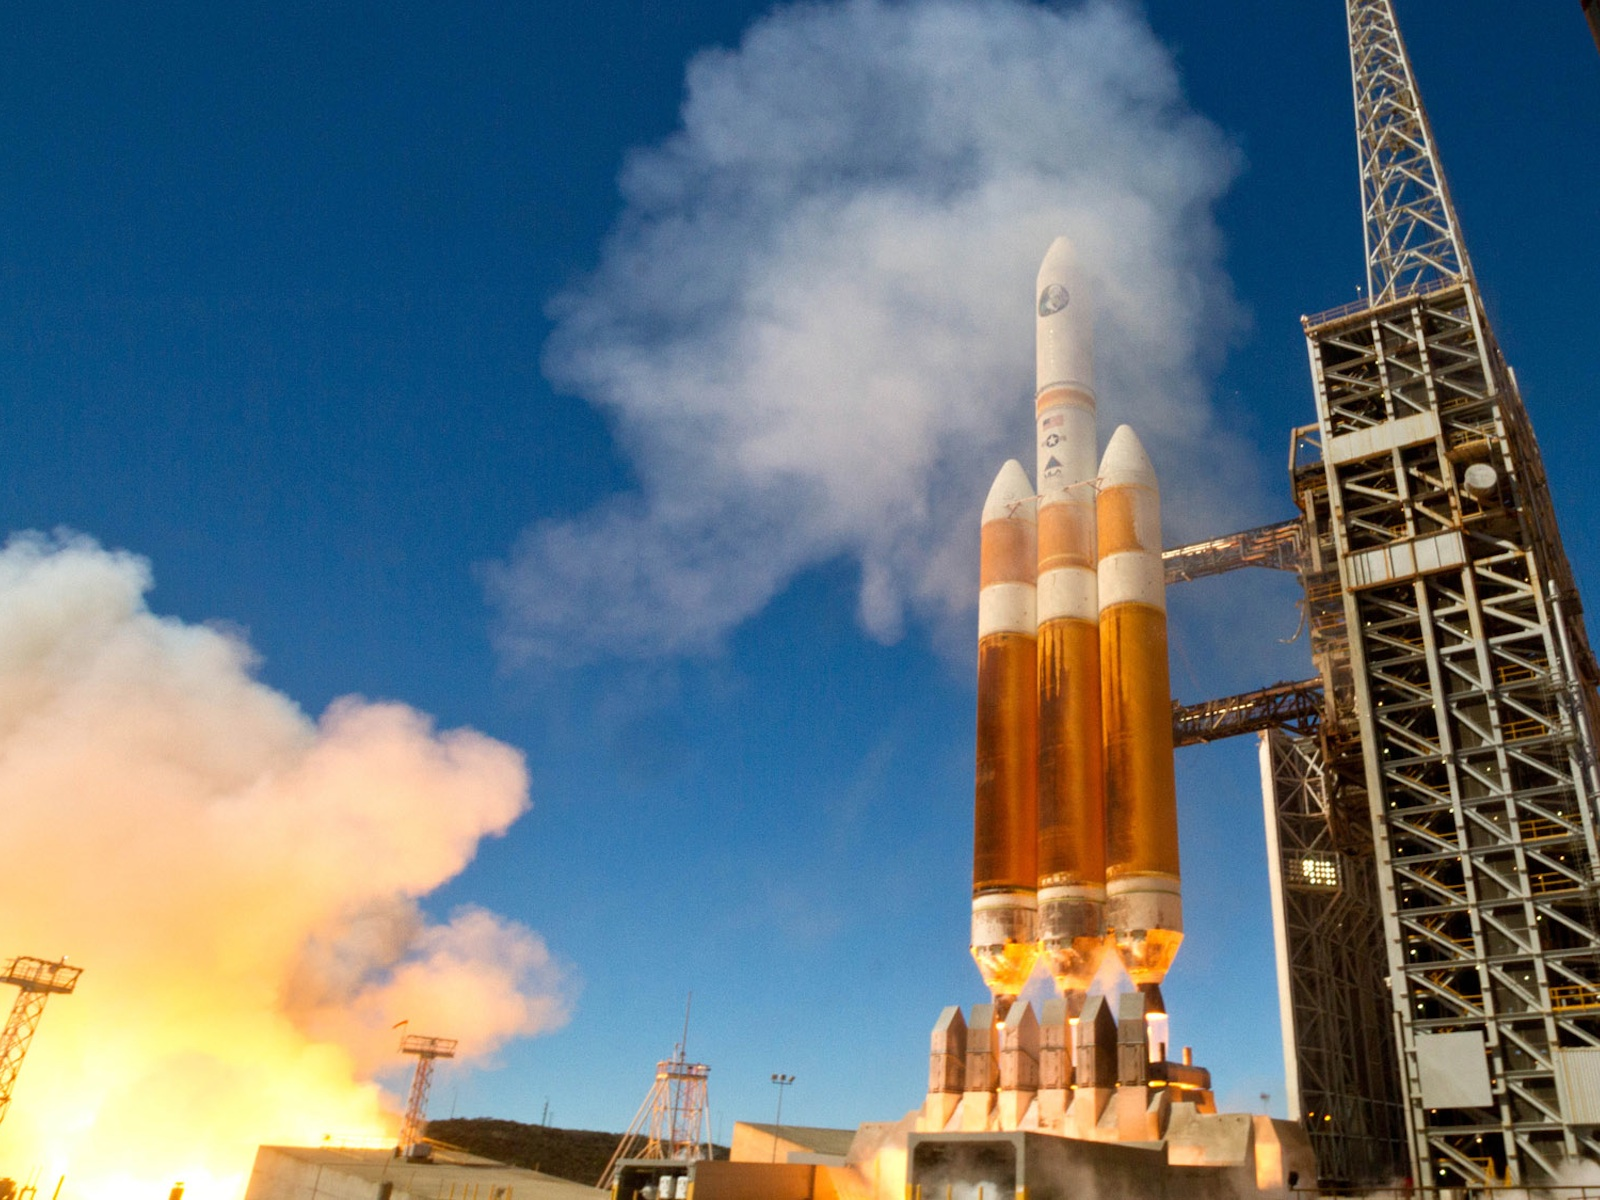 Delta 4-Heavy Rocket Launches space wallpaper